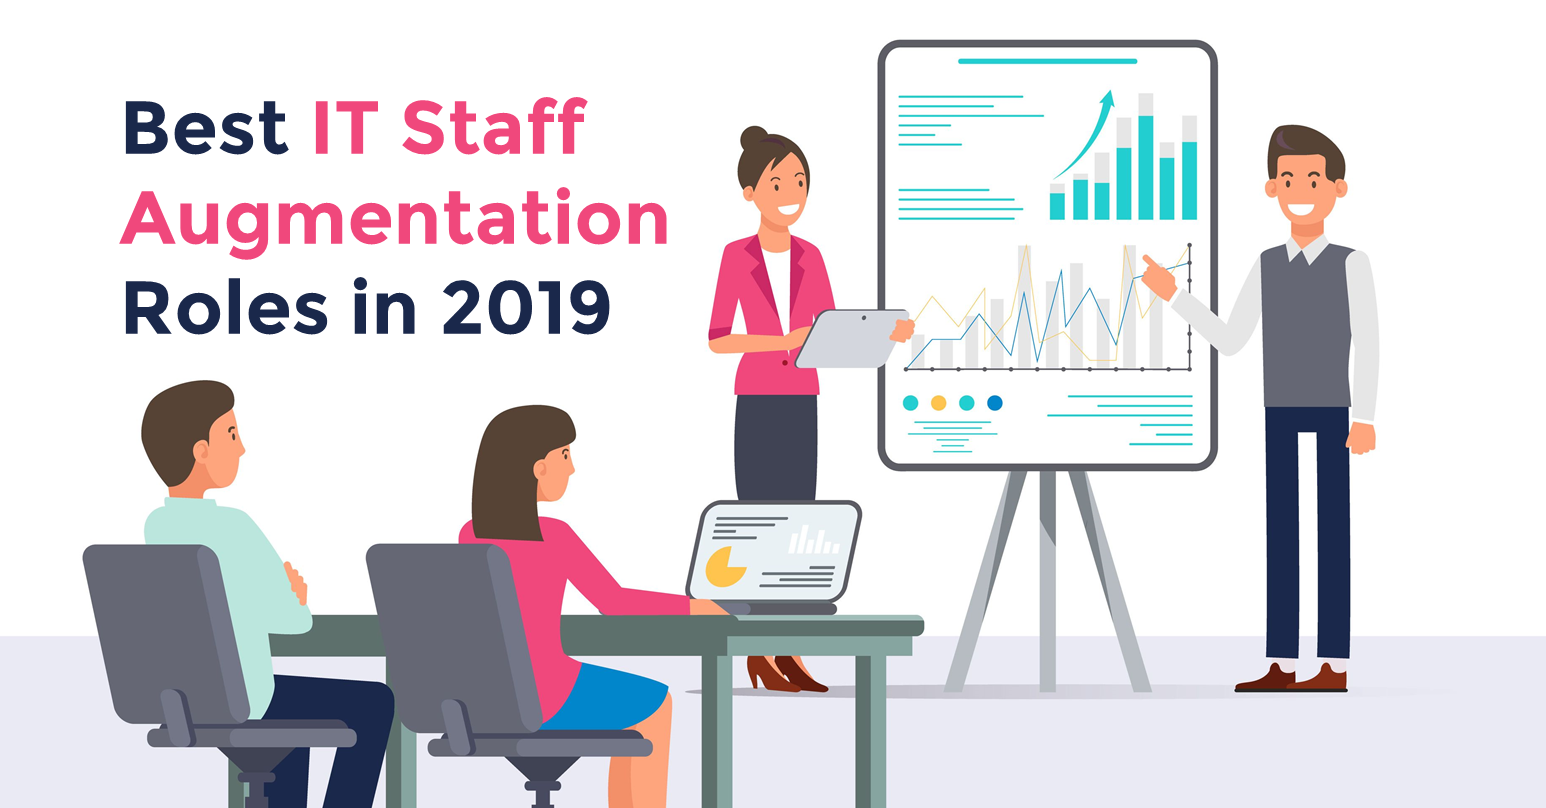 The Top 5 IT Staff Augmentation Roles